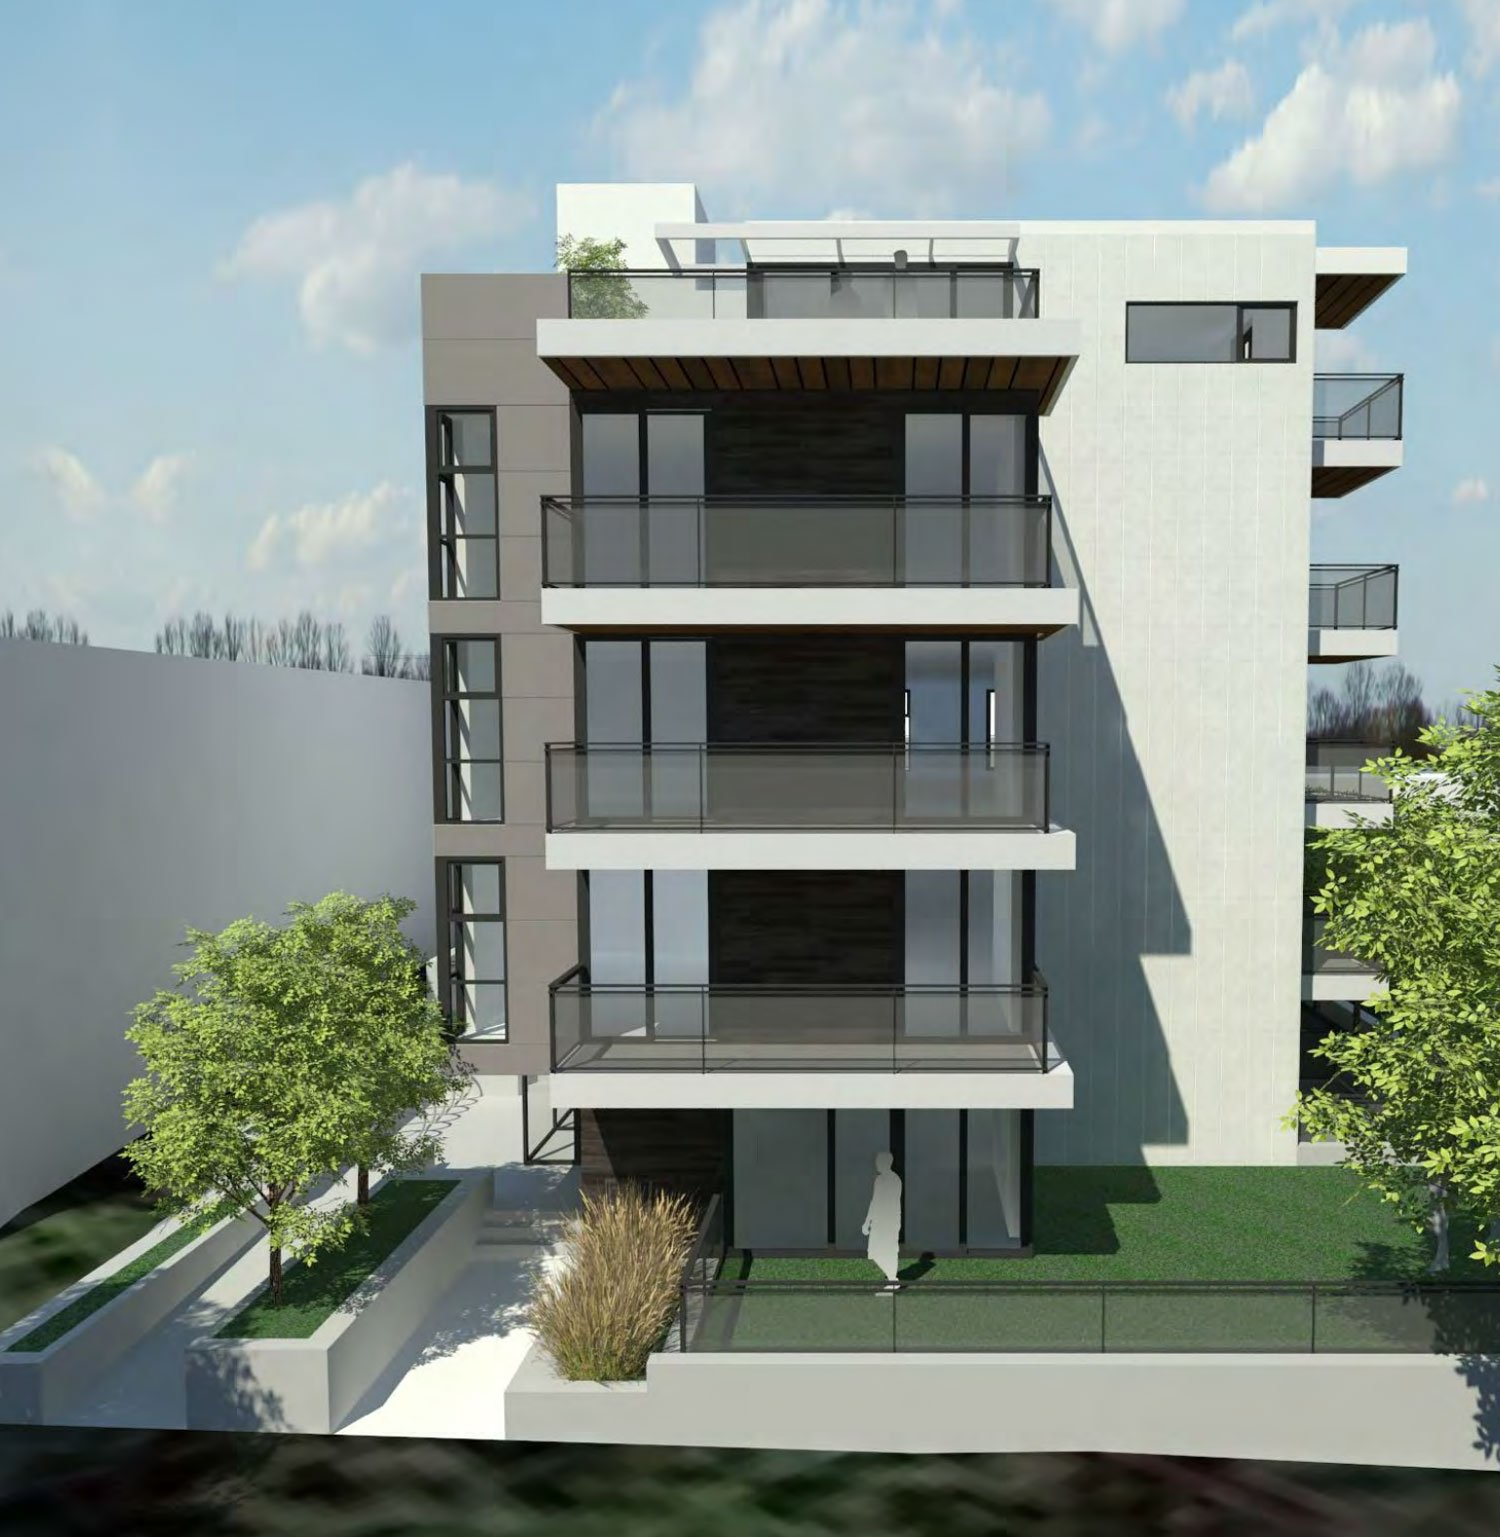 Small boutique building proposed for 1021 burnaby street for Build a house on your land